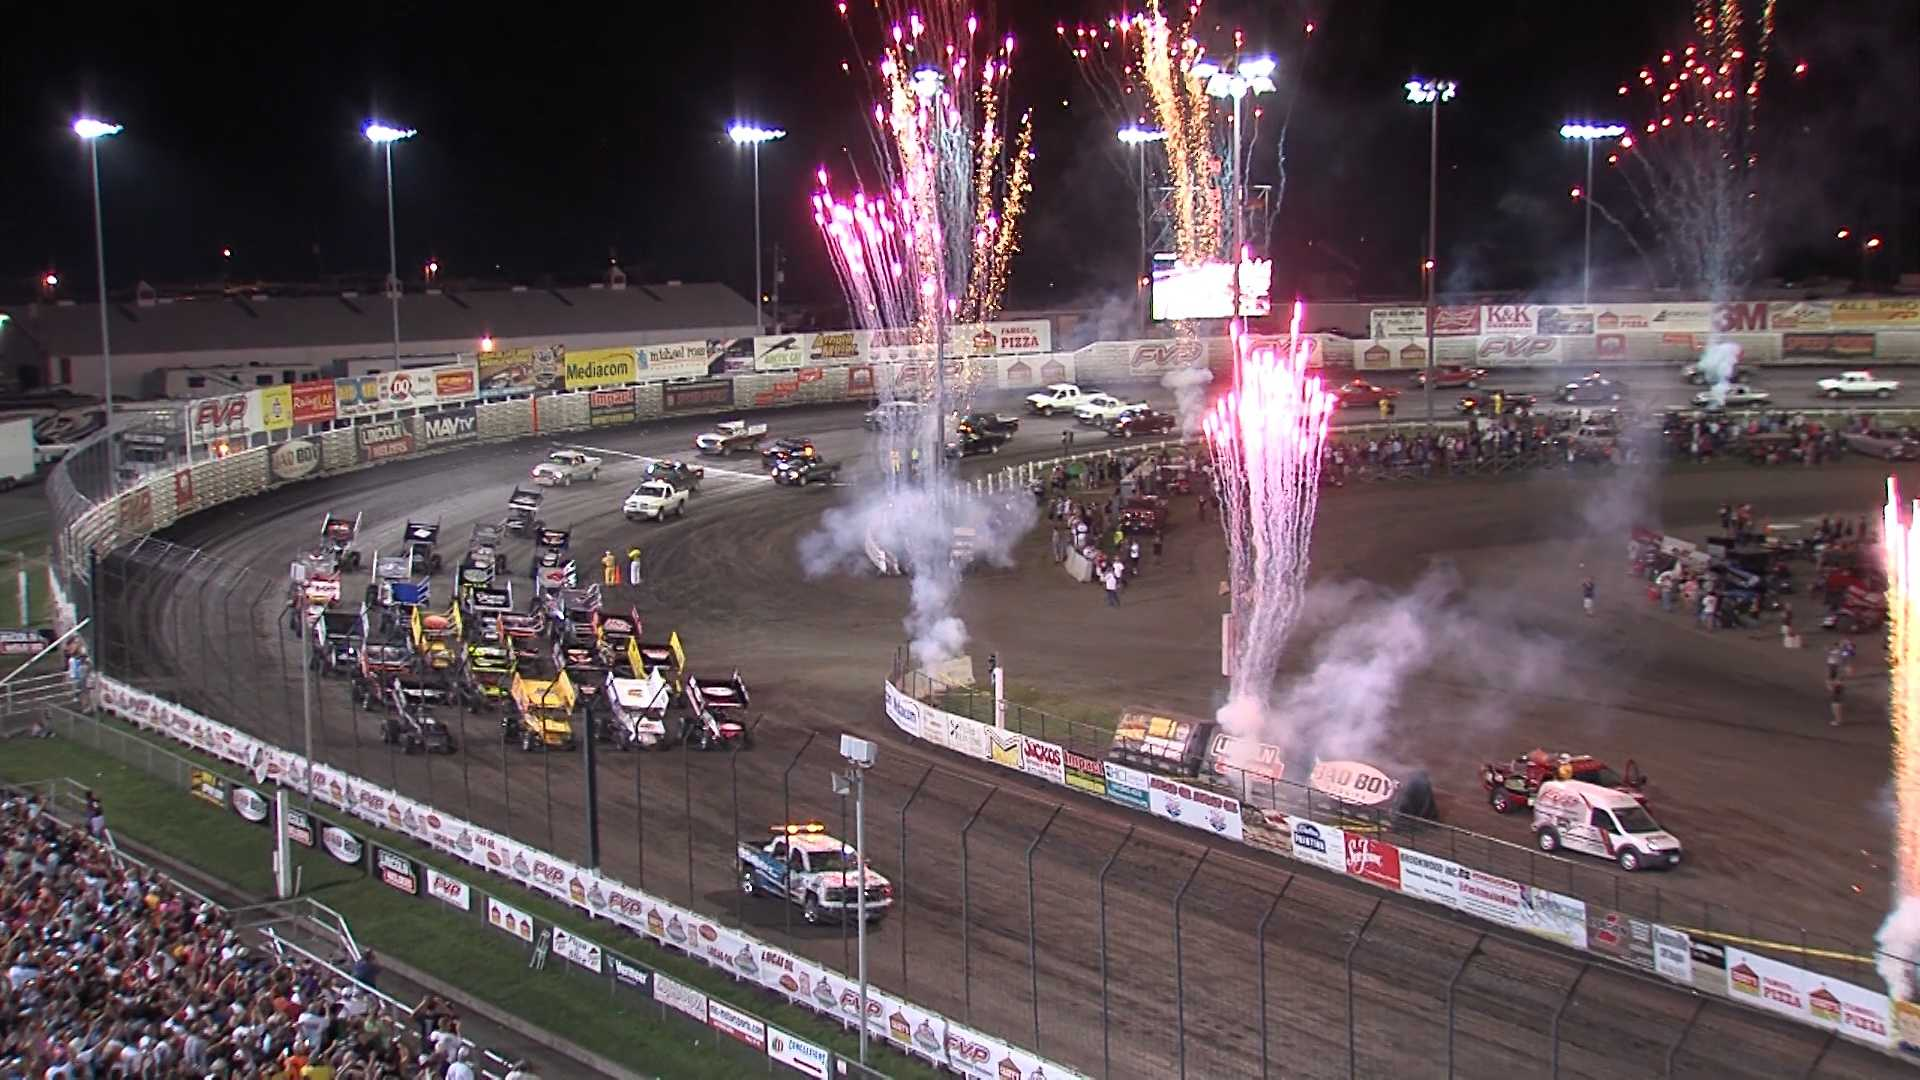 It was another grand spectacle Saturday night at the Knoxville Nationals.